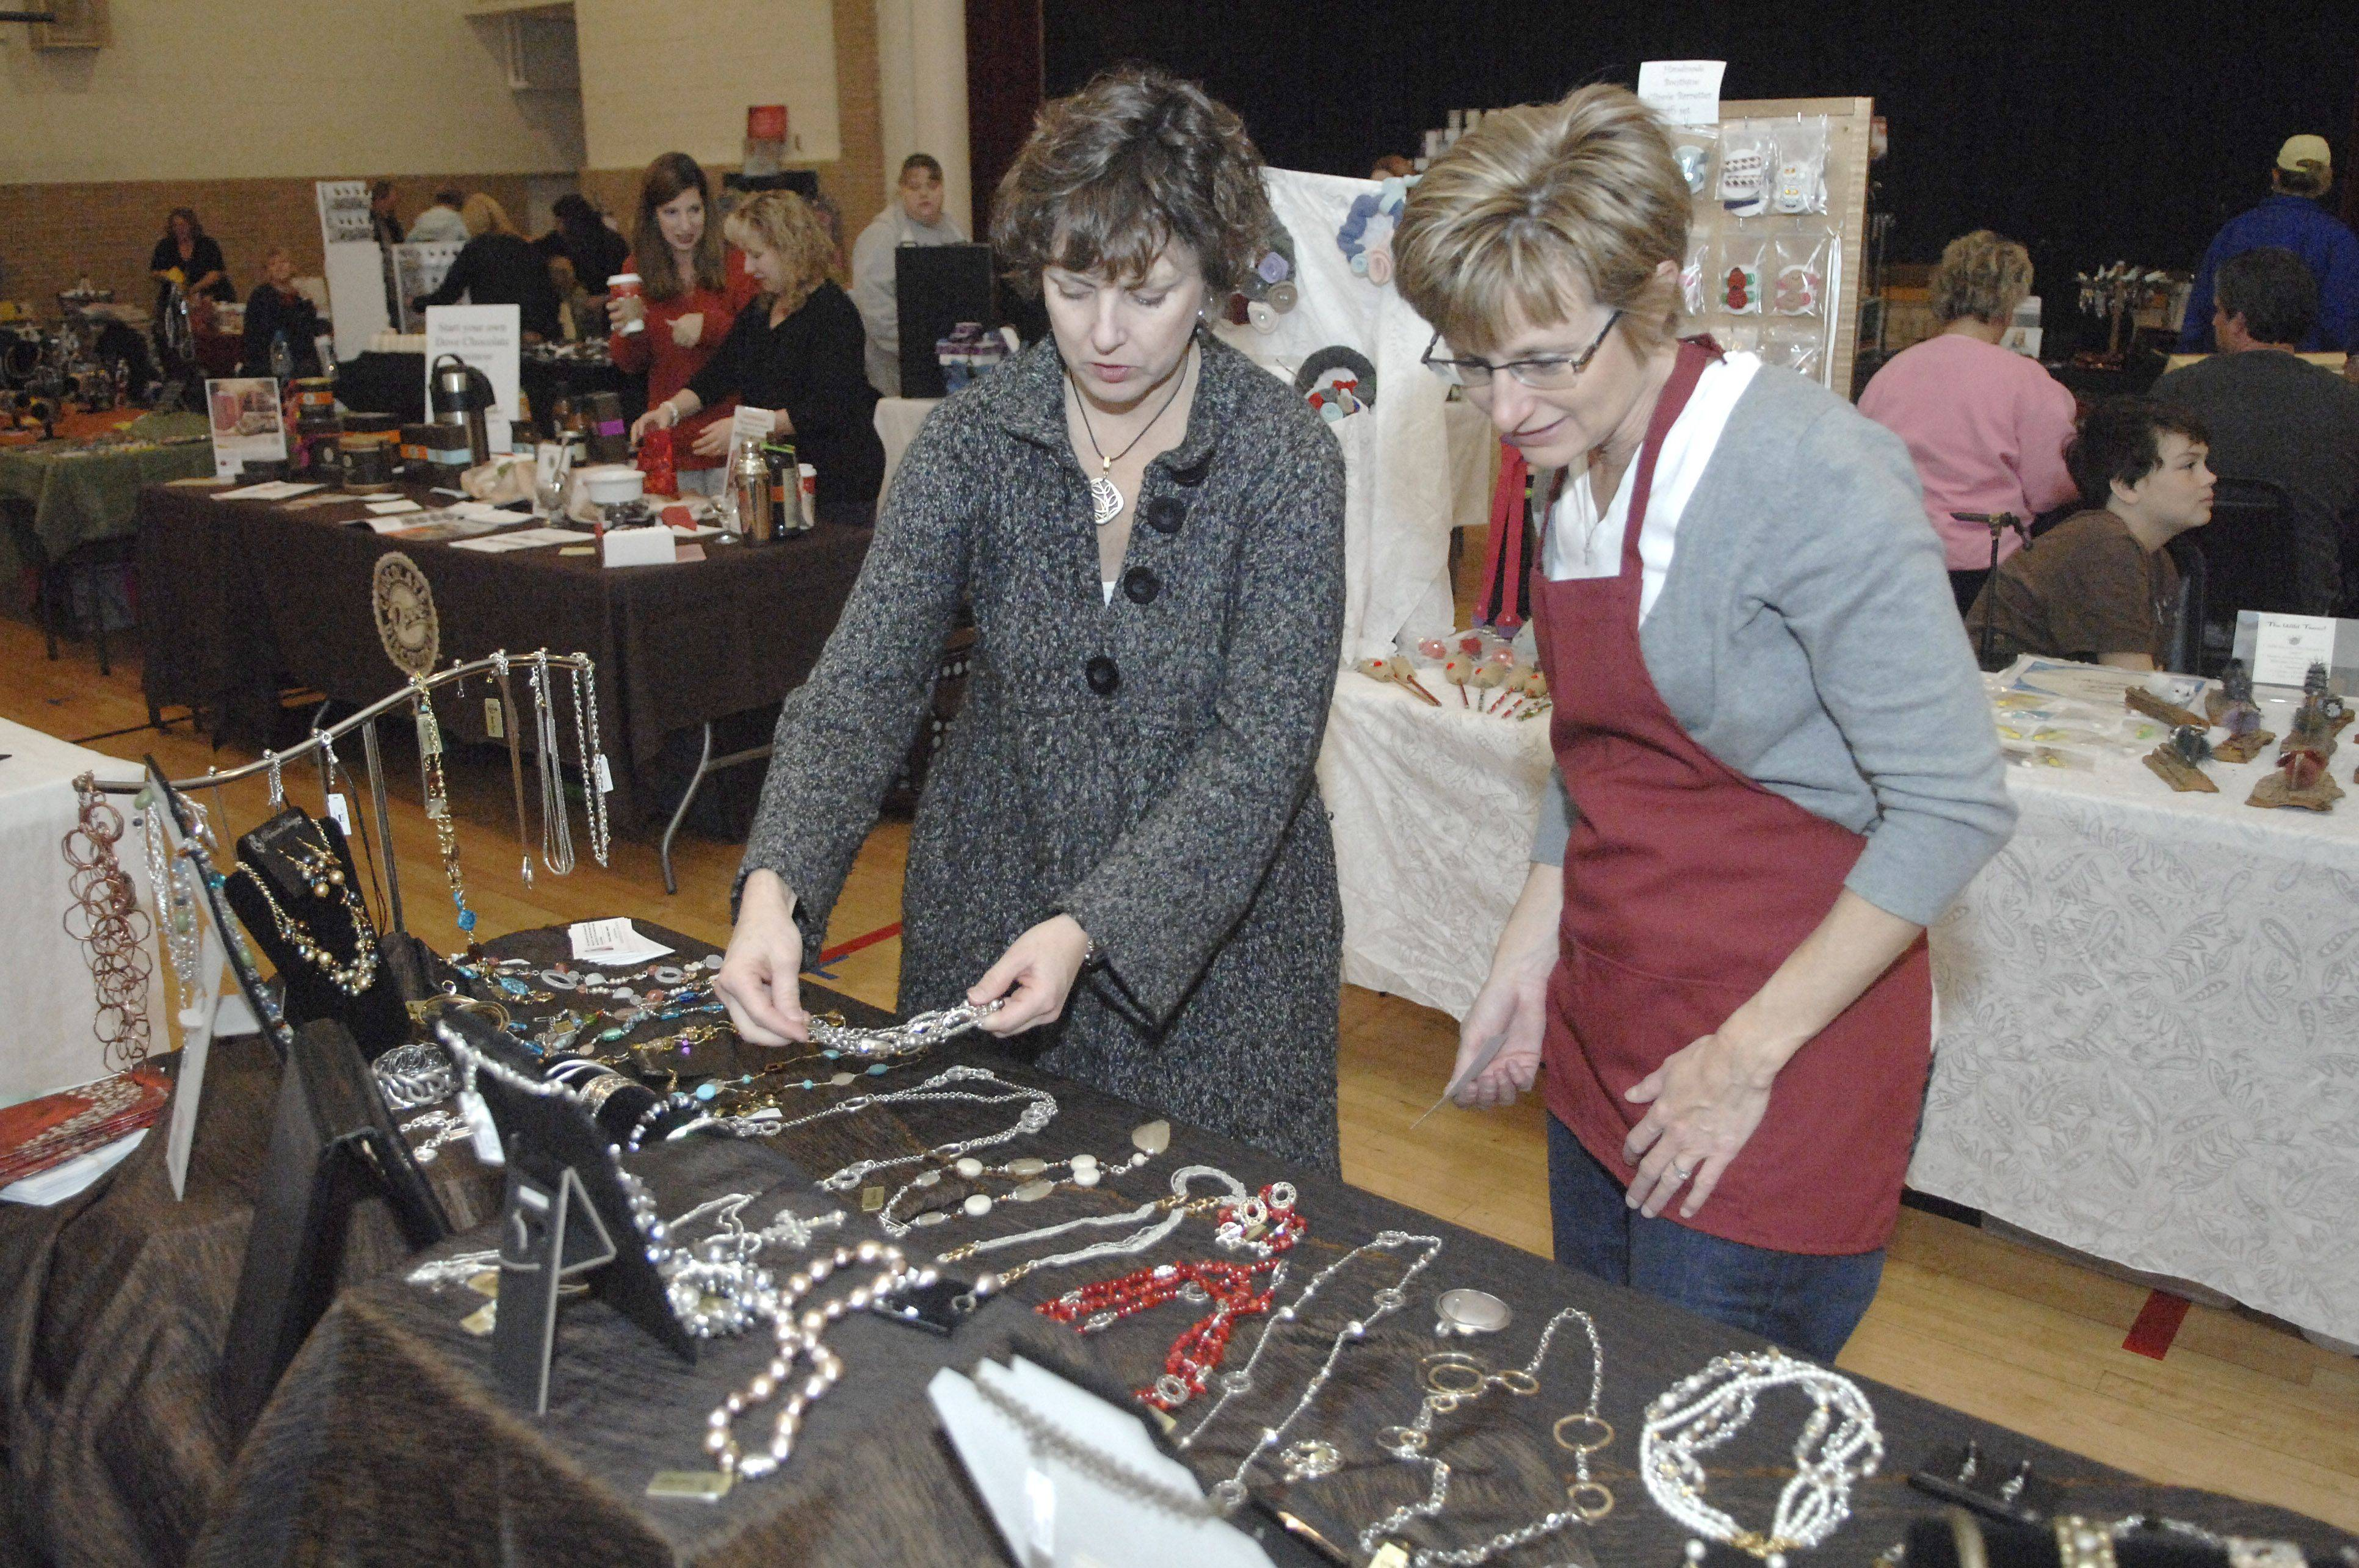 Premier Designs jewelry vendor Carol Abrams helps shopper Jamie Hanson of Batavia browse a large selection of affordable jewelry at the third annual MALLternative craft and vendor show Saturday in the Bethany Ministry Center in Batavia.